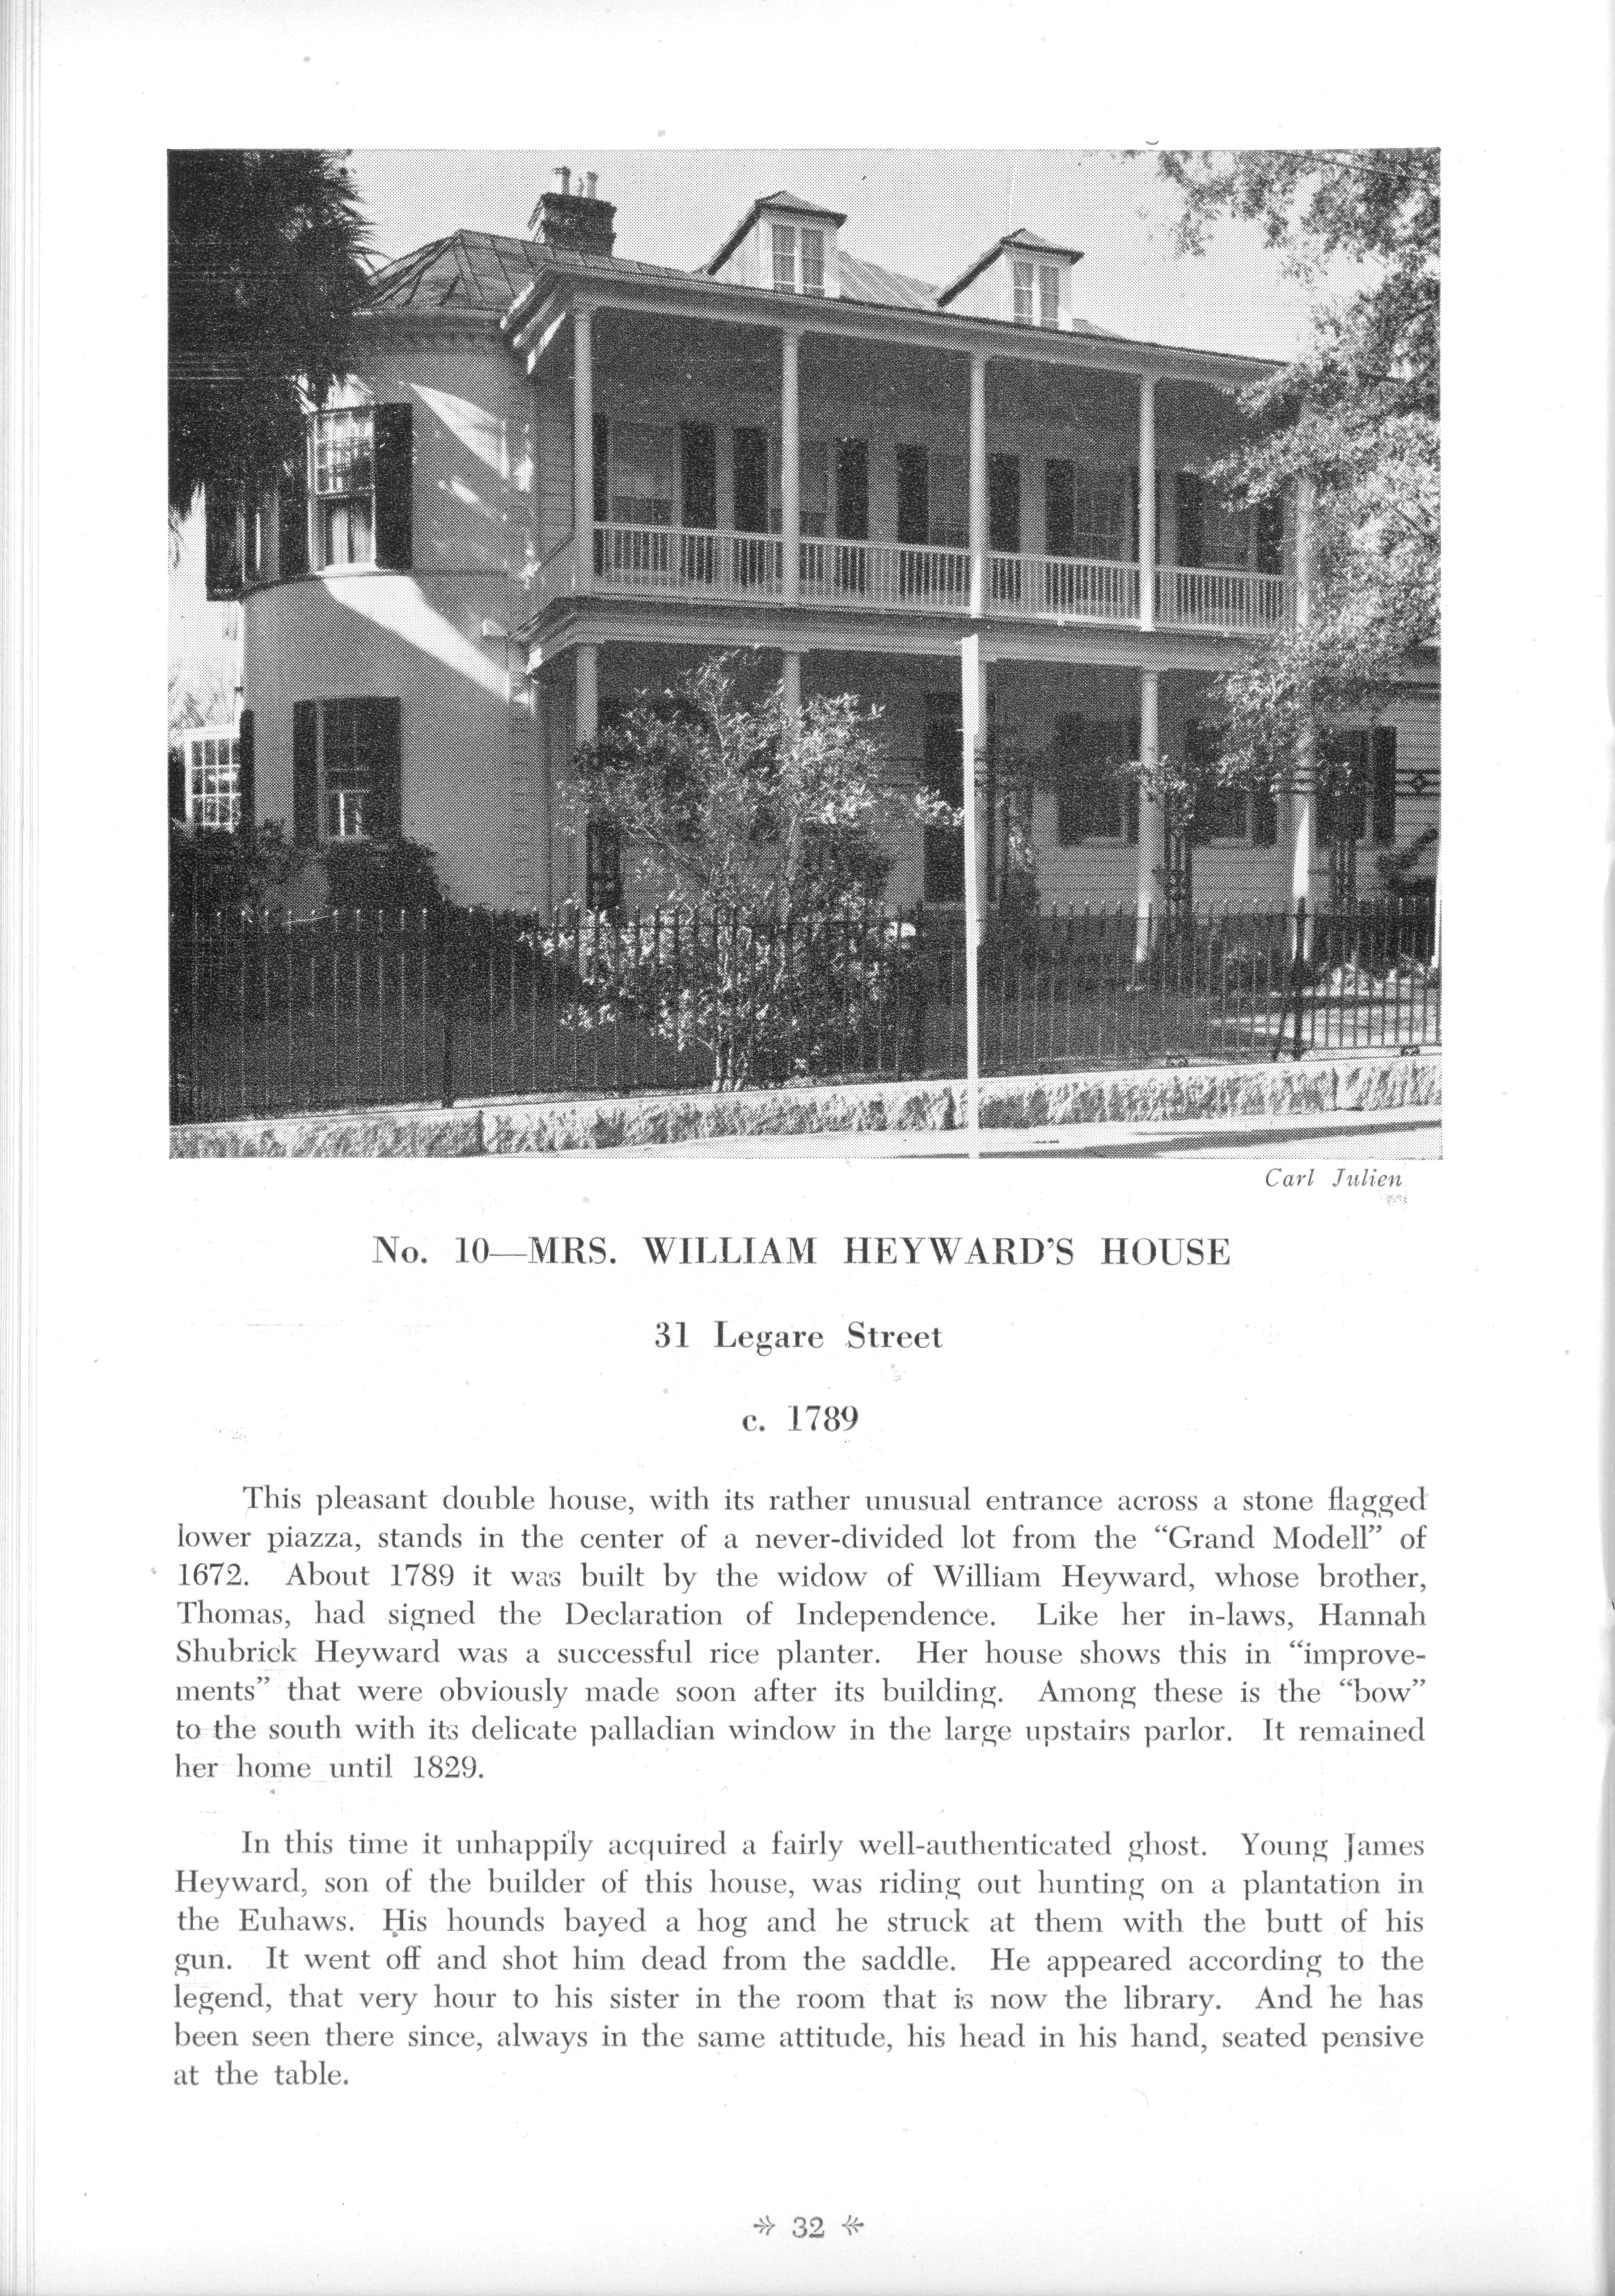 Page 32:  No. 10 - Mrs. William Heyward's House, 31 Legare Street, c. 1789